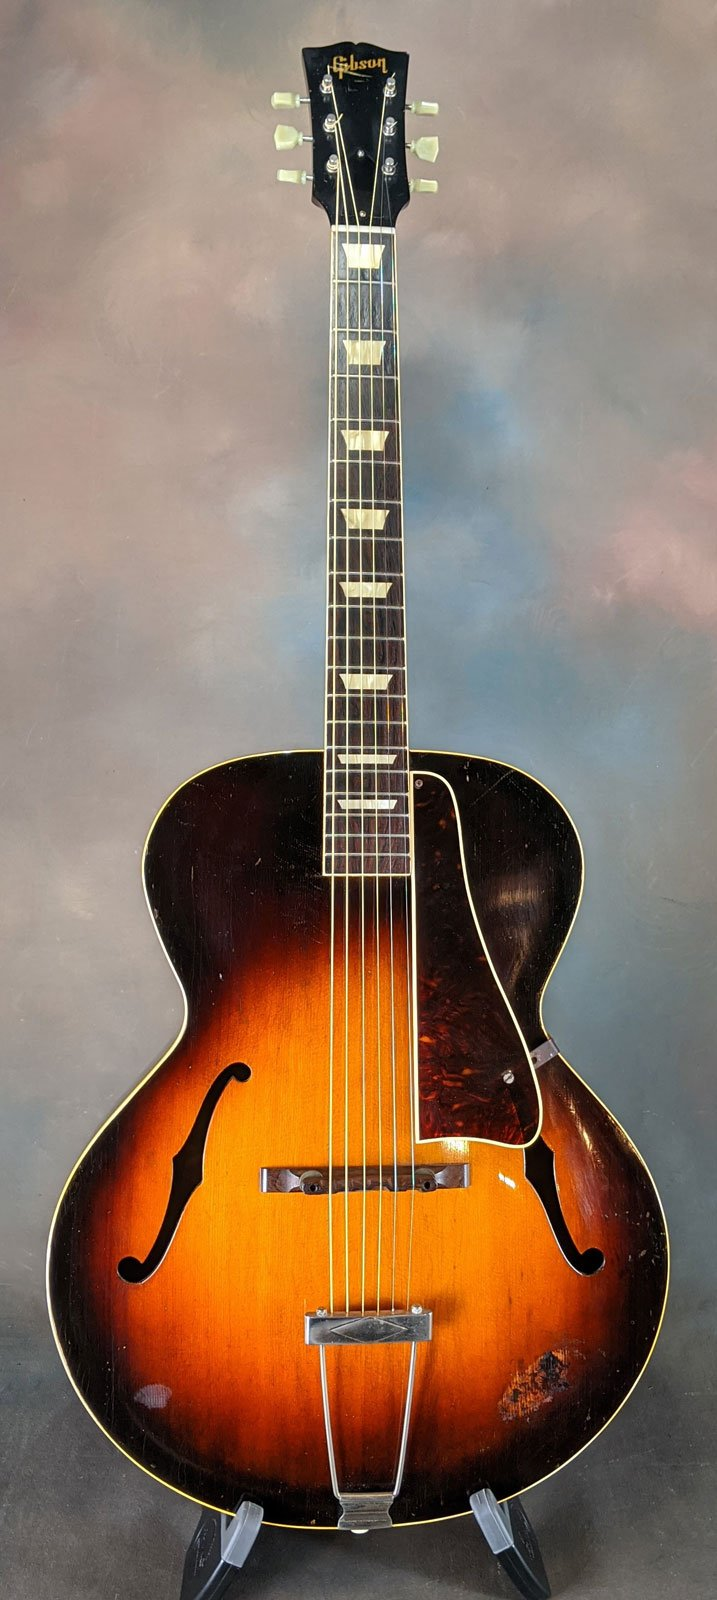 1940s Gibson L-50 Archtop